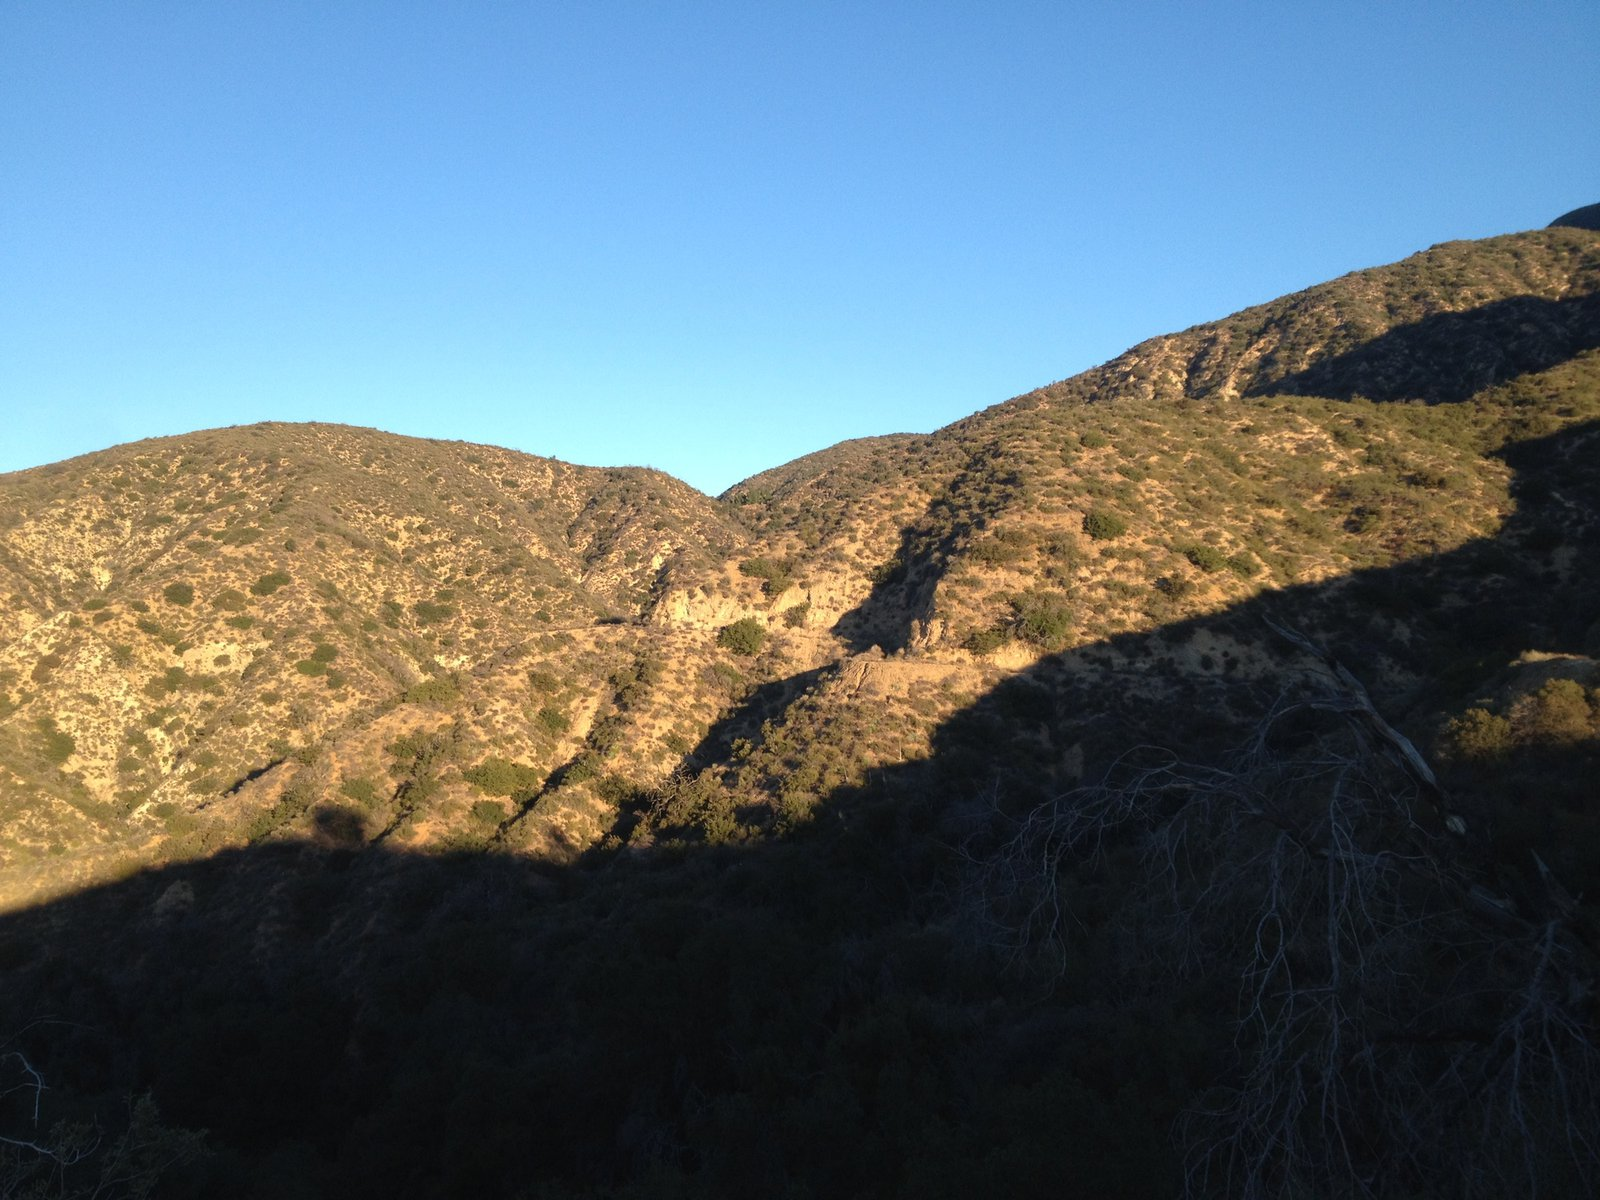 Looking up towards the Brown Mountain Saddle from Brown Mountain fire rd.